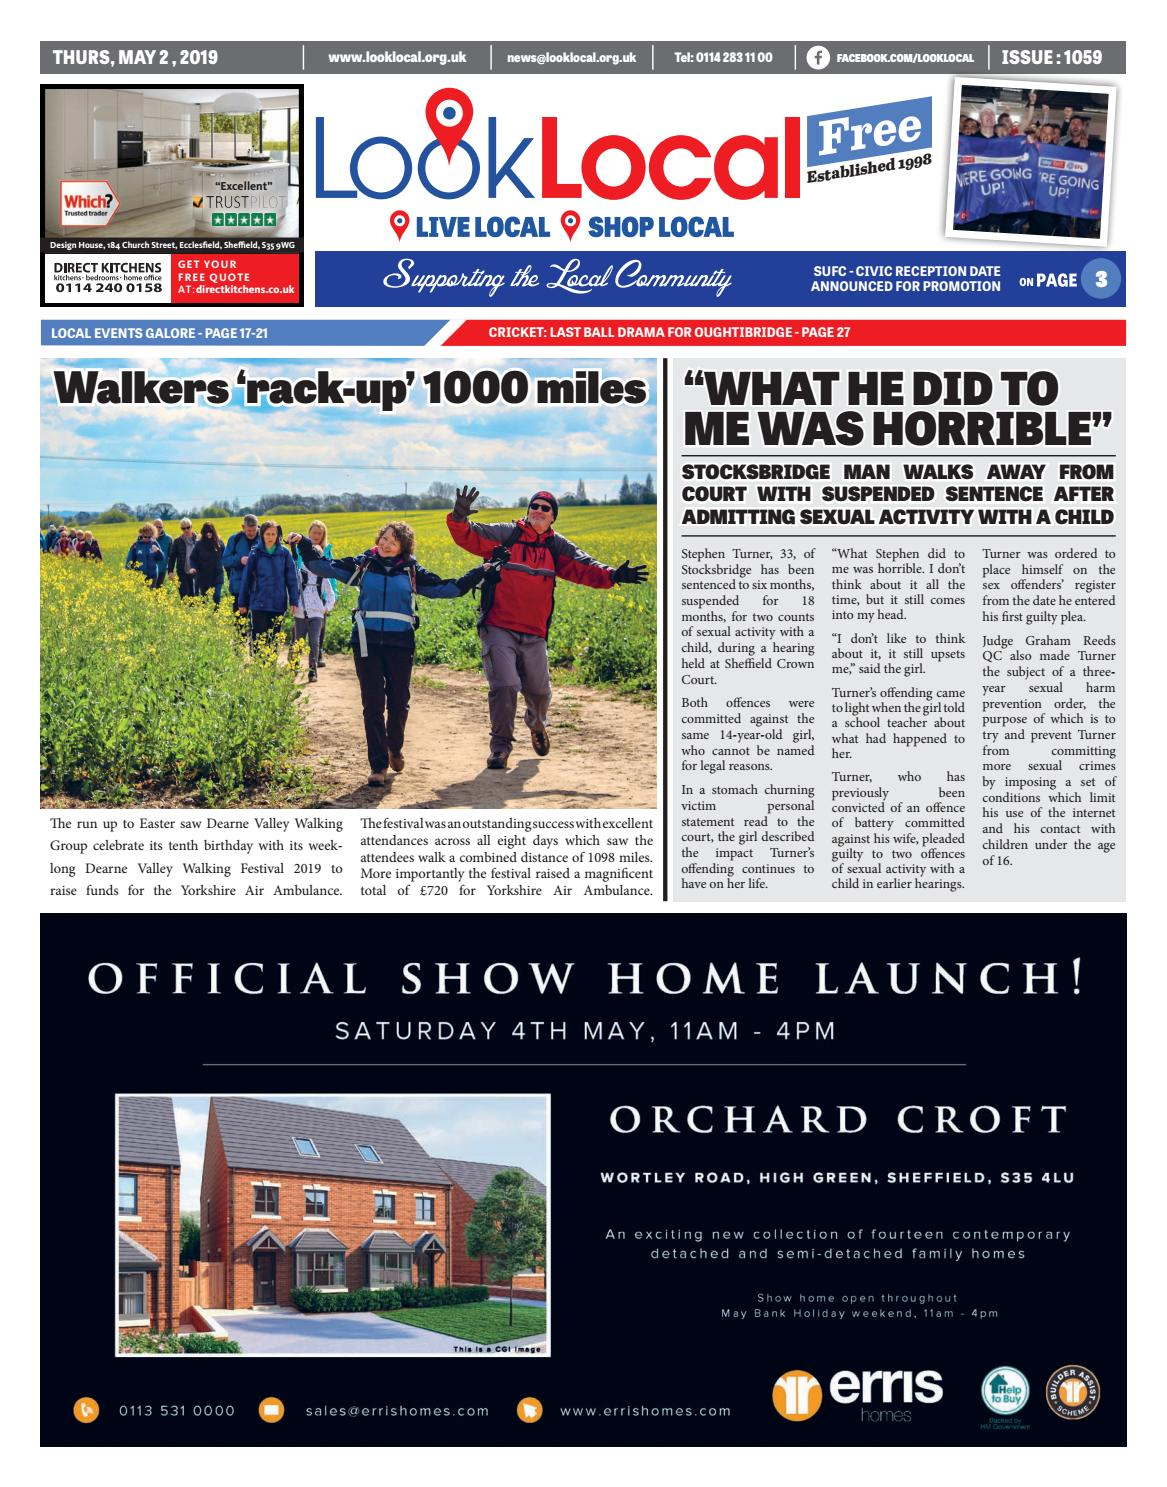 Issue 1059 Thursday 2 May 2019 by Look Local Newspaper - issuu